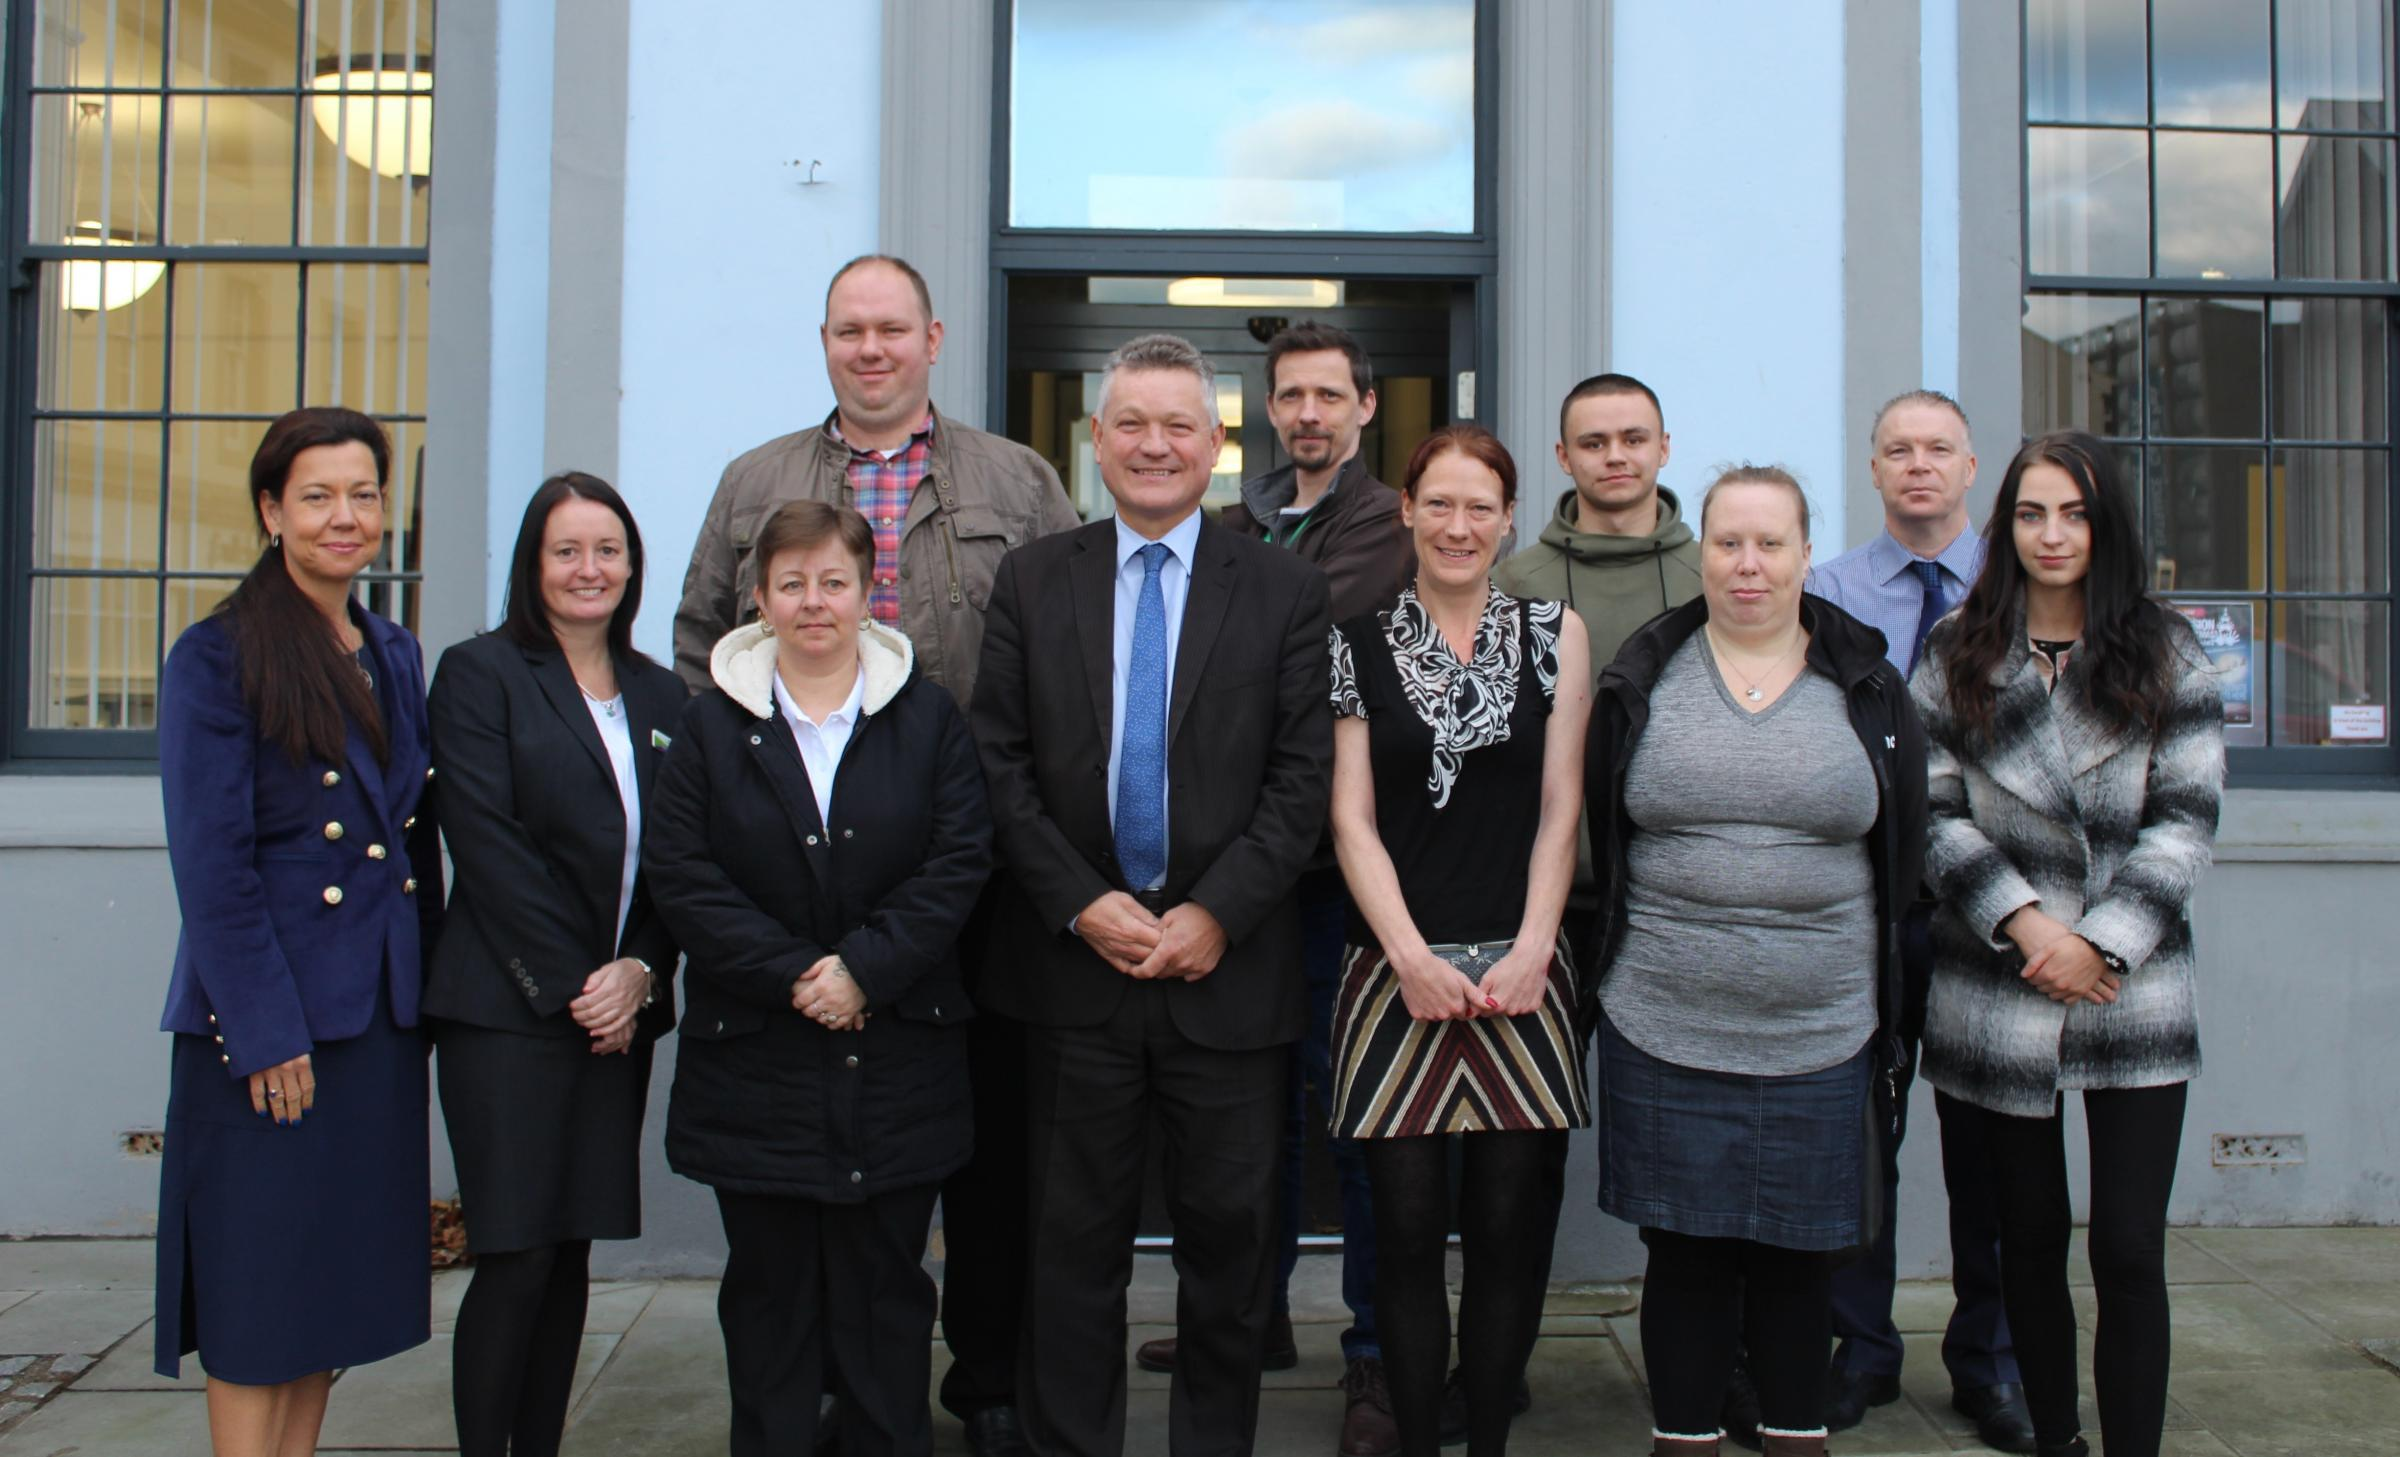 Members of Copeland Council's latest Work Academy: Firouzeh Madhoush, Reagan Skipper, Fiona Thompson, John Story, Jennifer Topliss, Jack Blackwell-Stagg, Amy Hindmarsh, and Katie Chapman, with Mayor Mike Starkie, employers Stephanie Skelly (Georgian